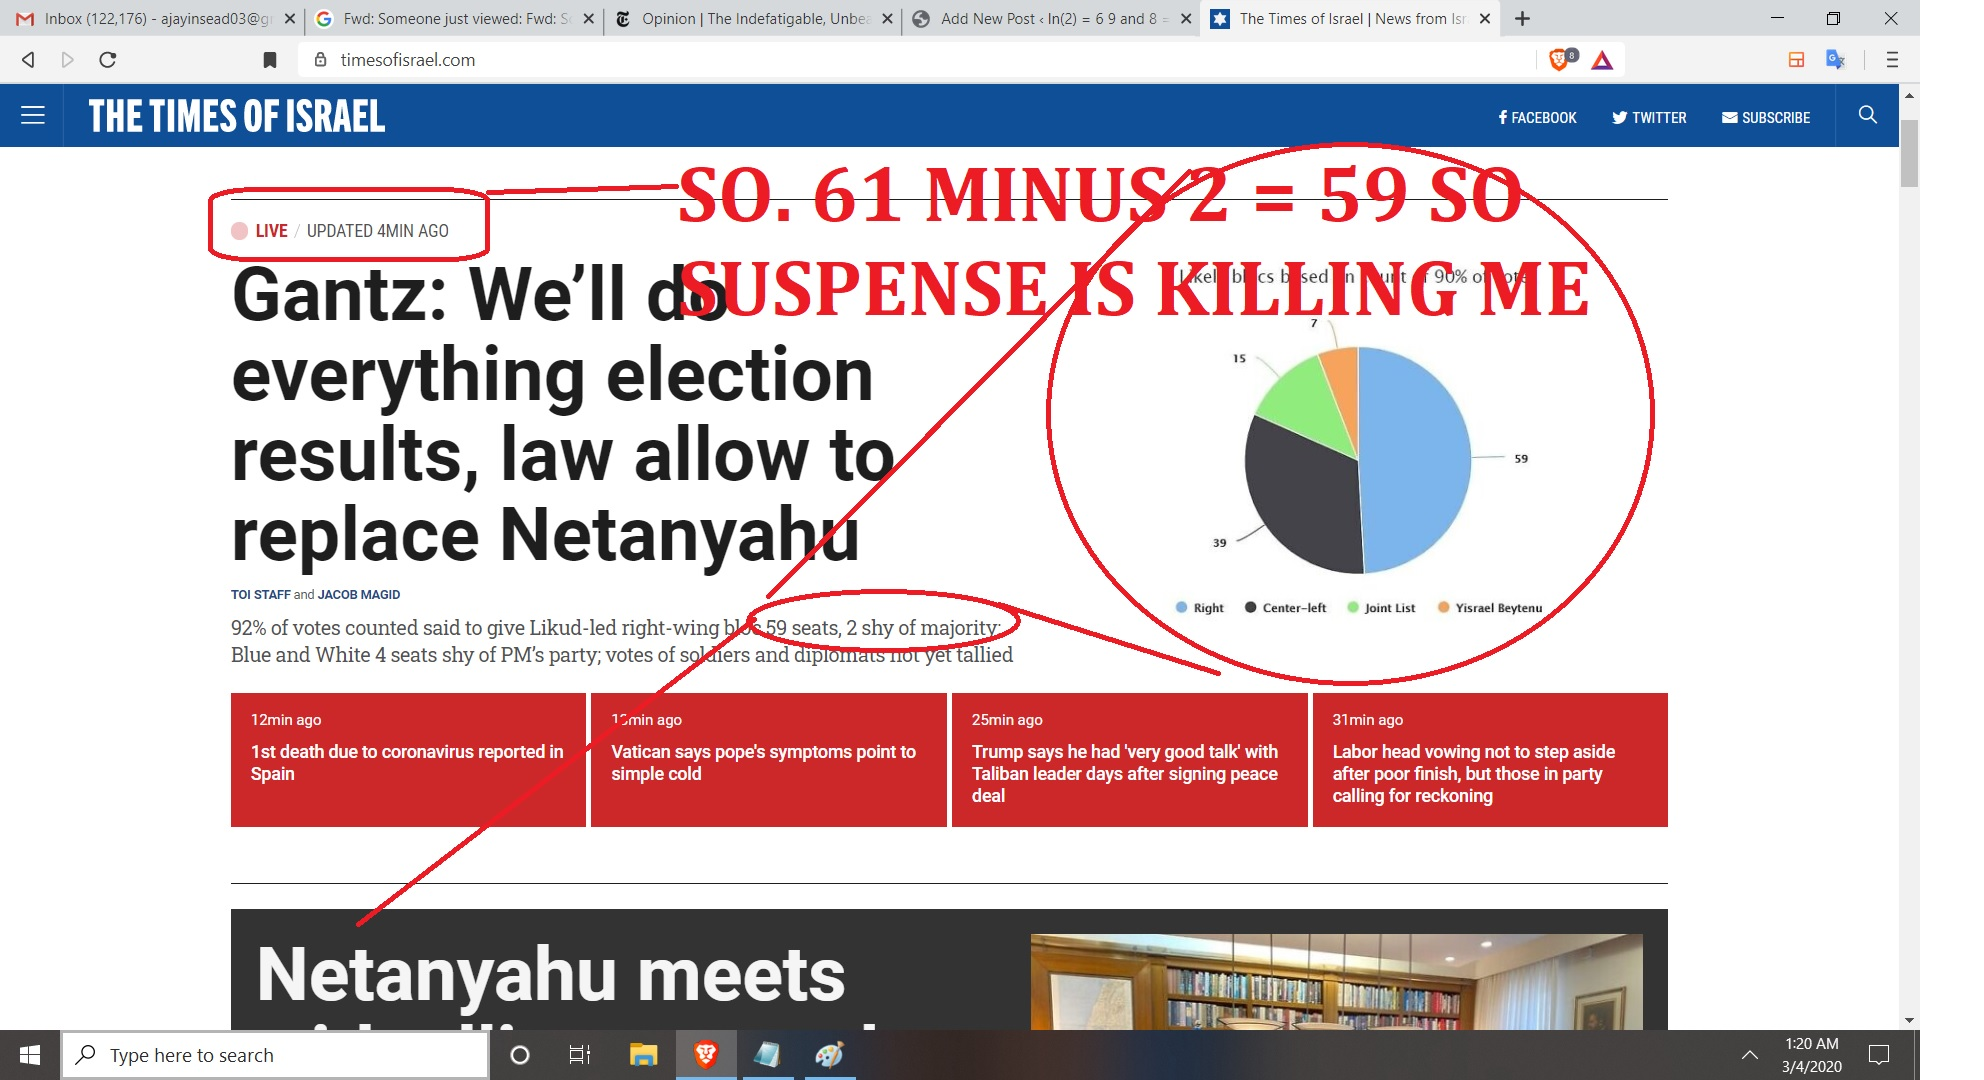 BUT WHATS THE LATEST NUMBERS IN OPLUS 972 FOR NETANAYHU - REGARDS OLGA LEDNCIHENKO AND AJAY